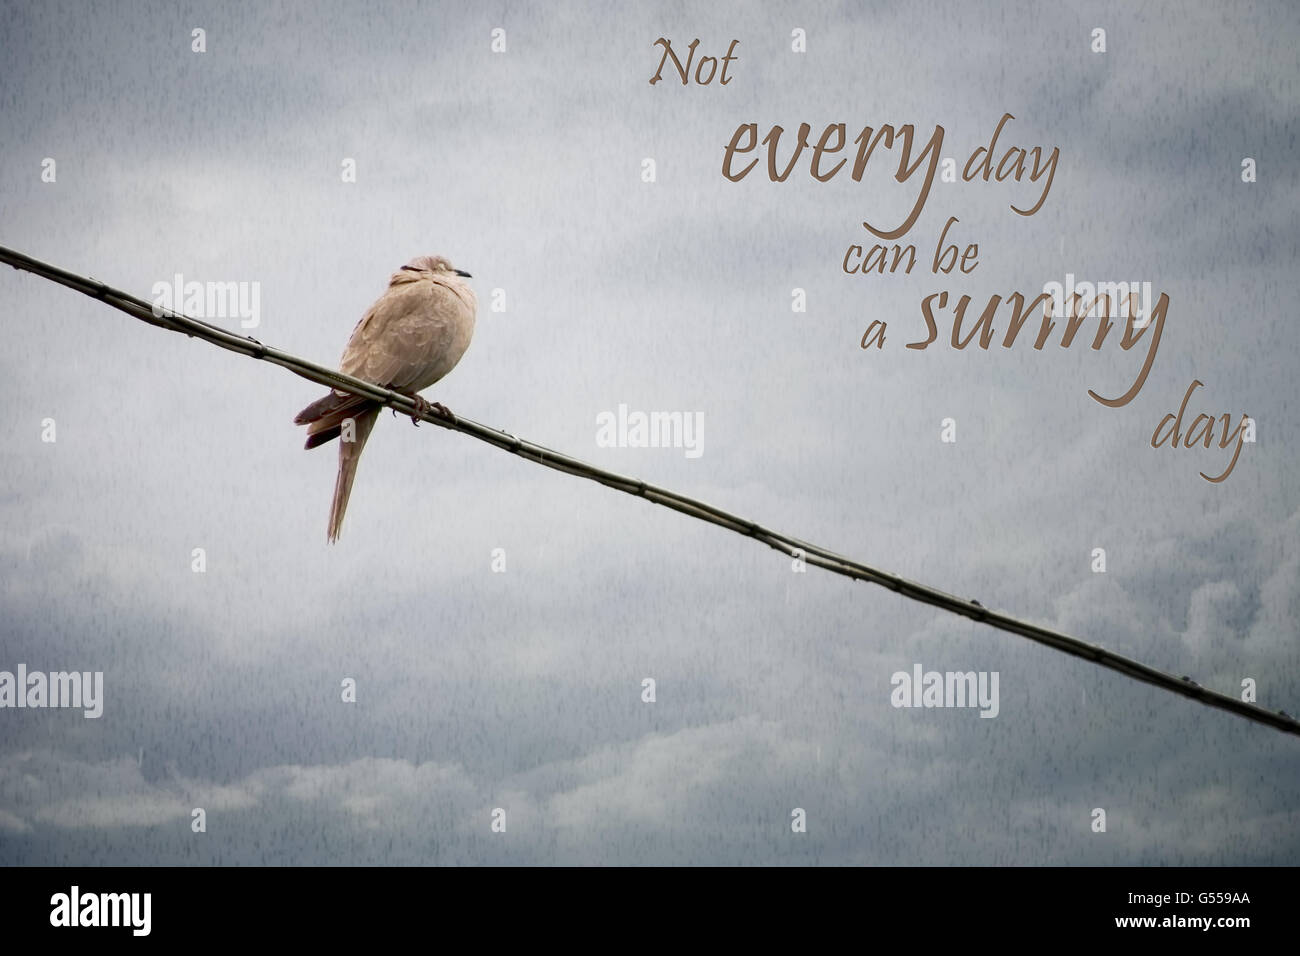 Truism. Wet bird on telephone wire. Bad weather life concept. - Stock Image